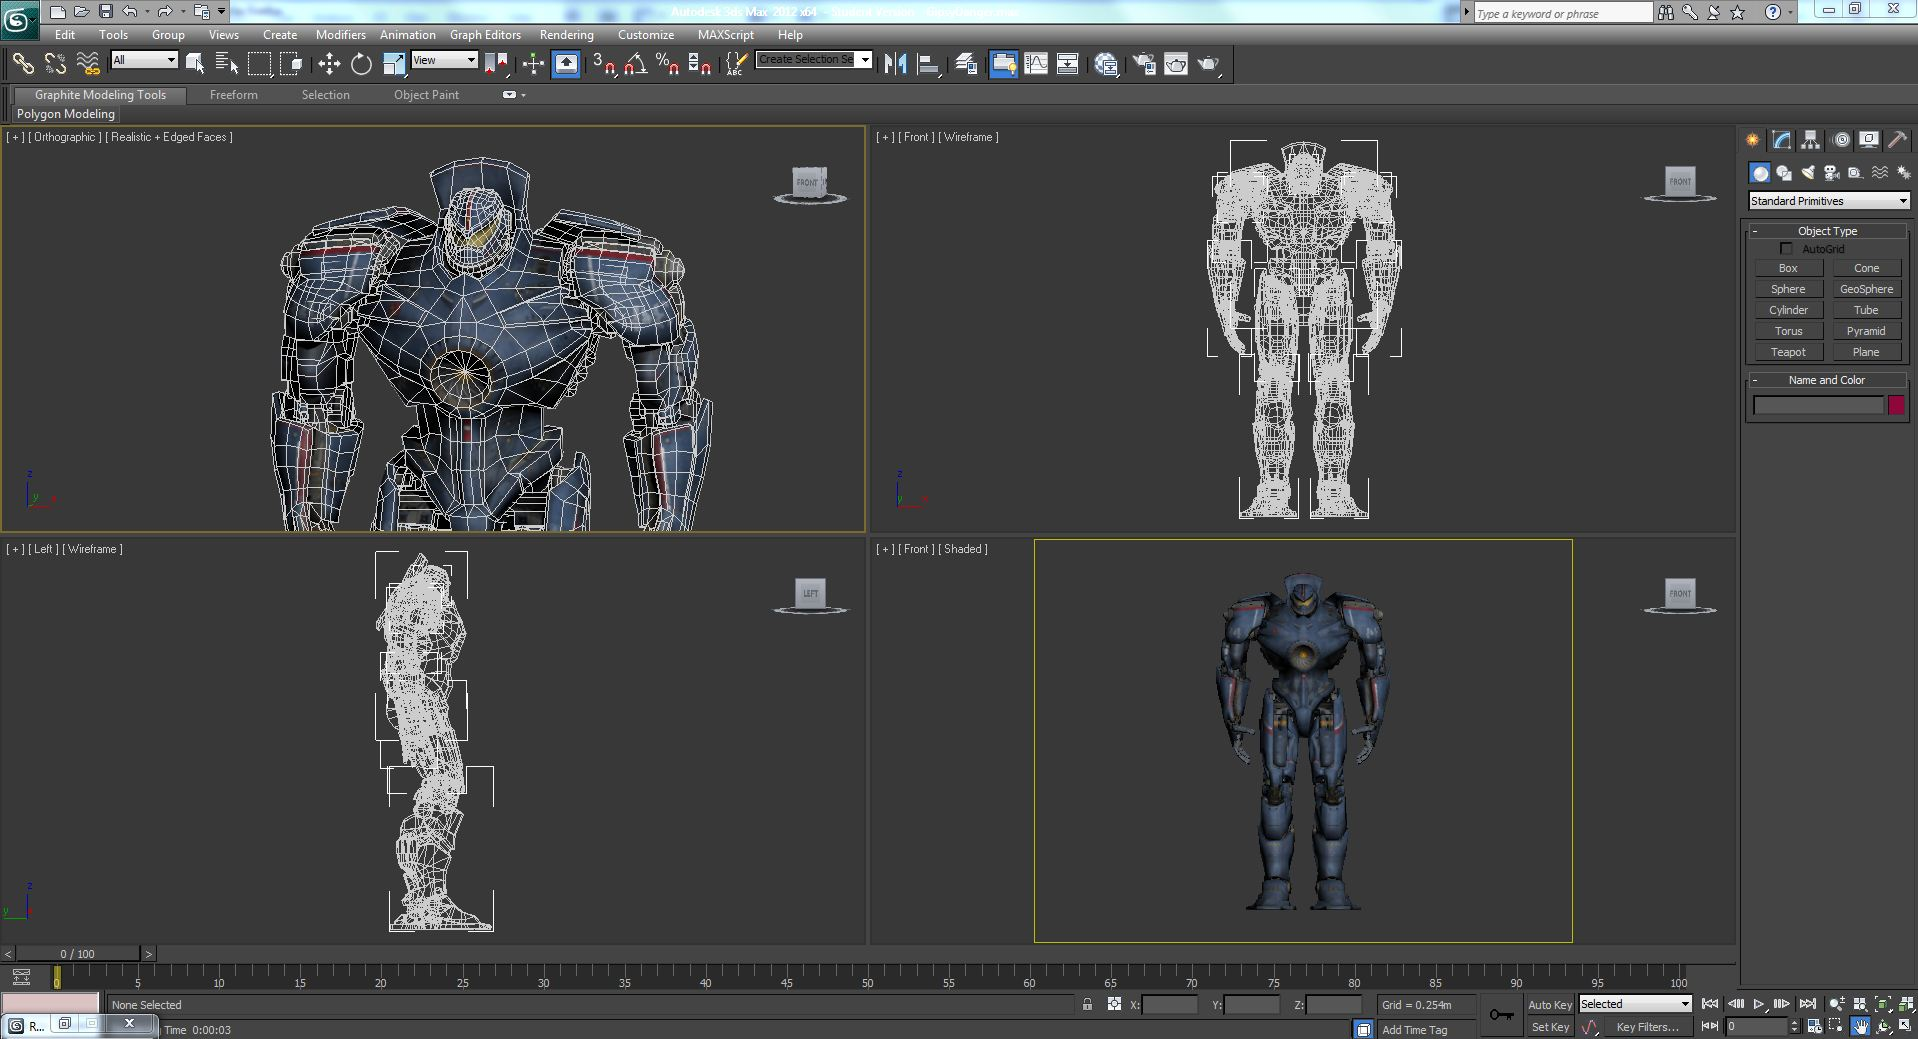 Enter The Ign Pacific Rim Jaeger Design Contest To Win An Assortment Of Fabulous Prizes